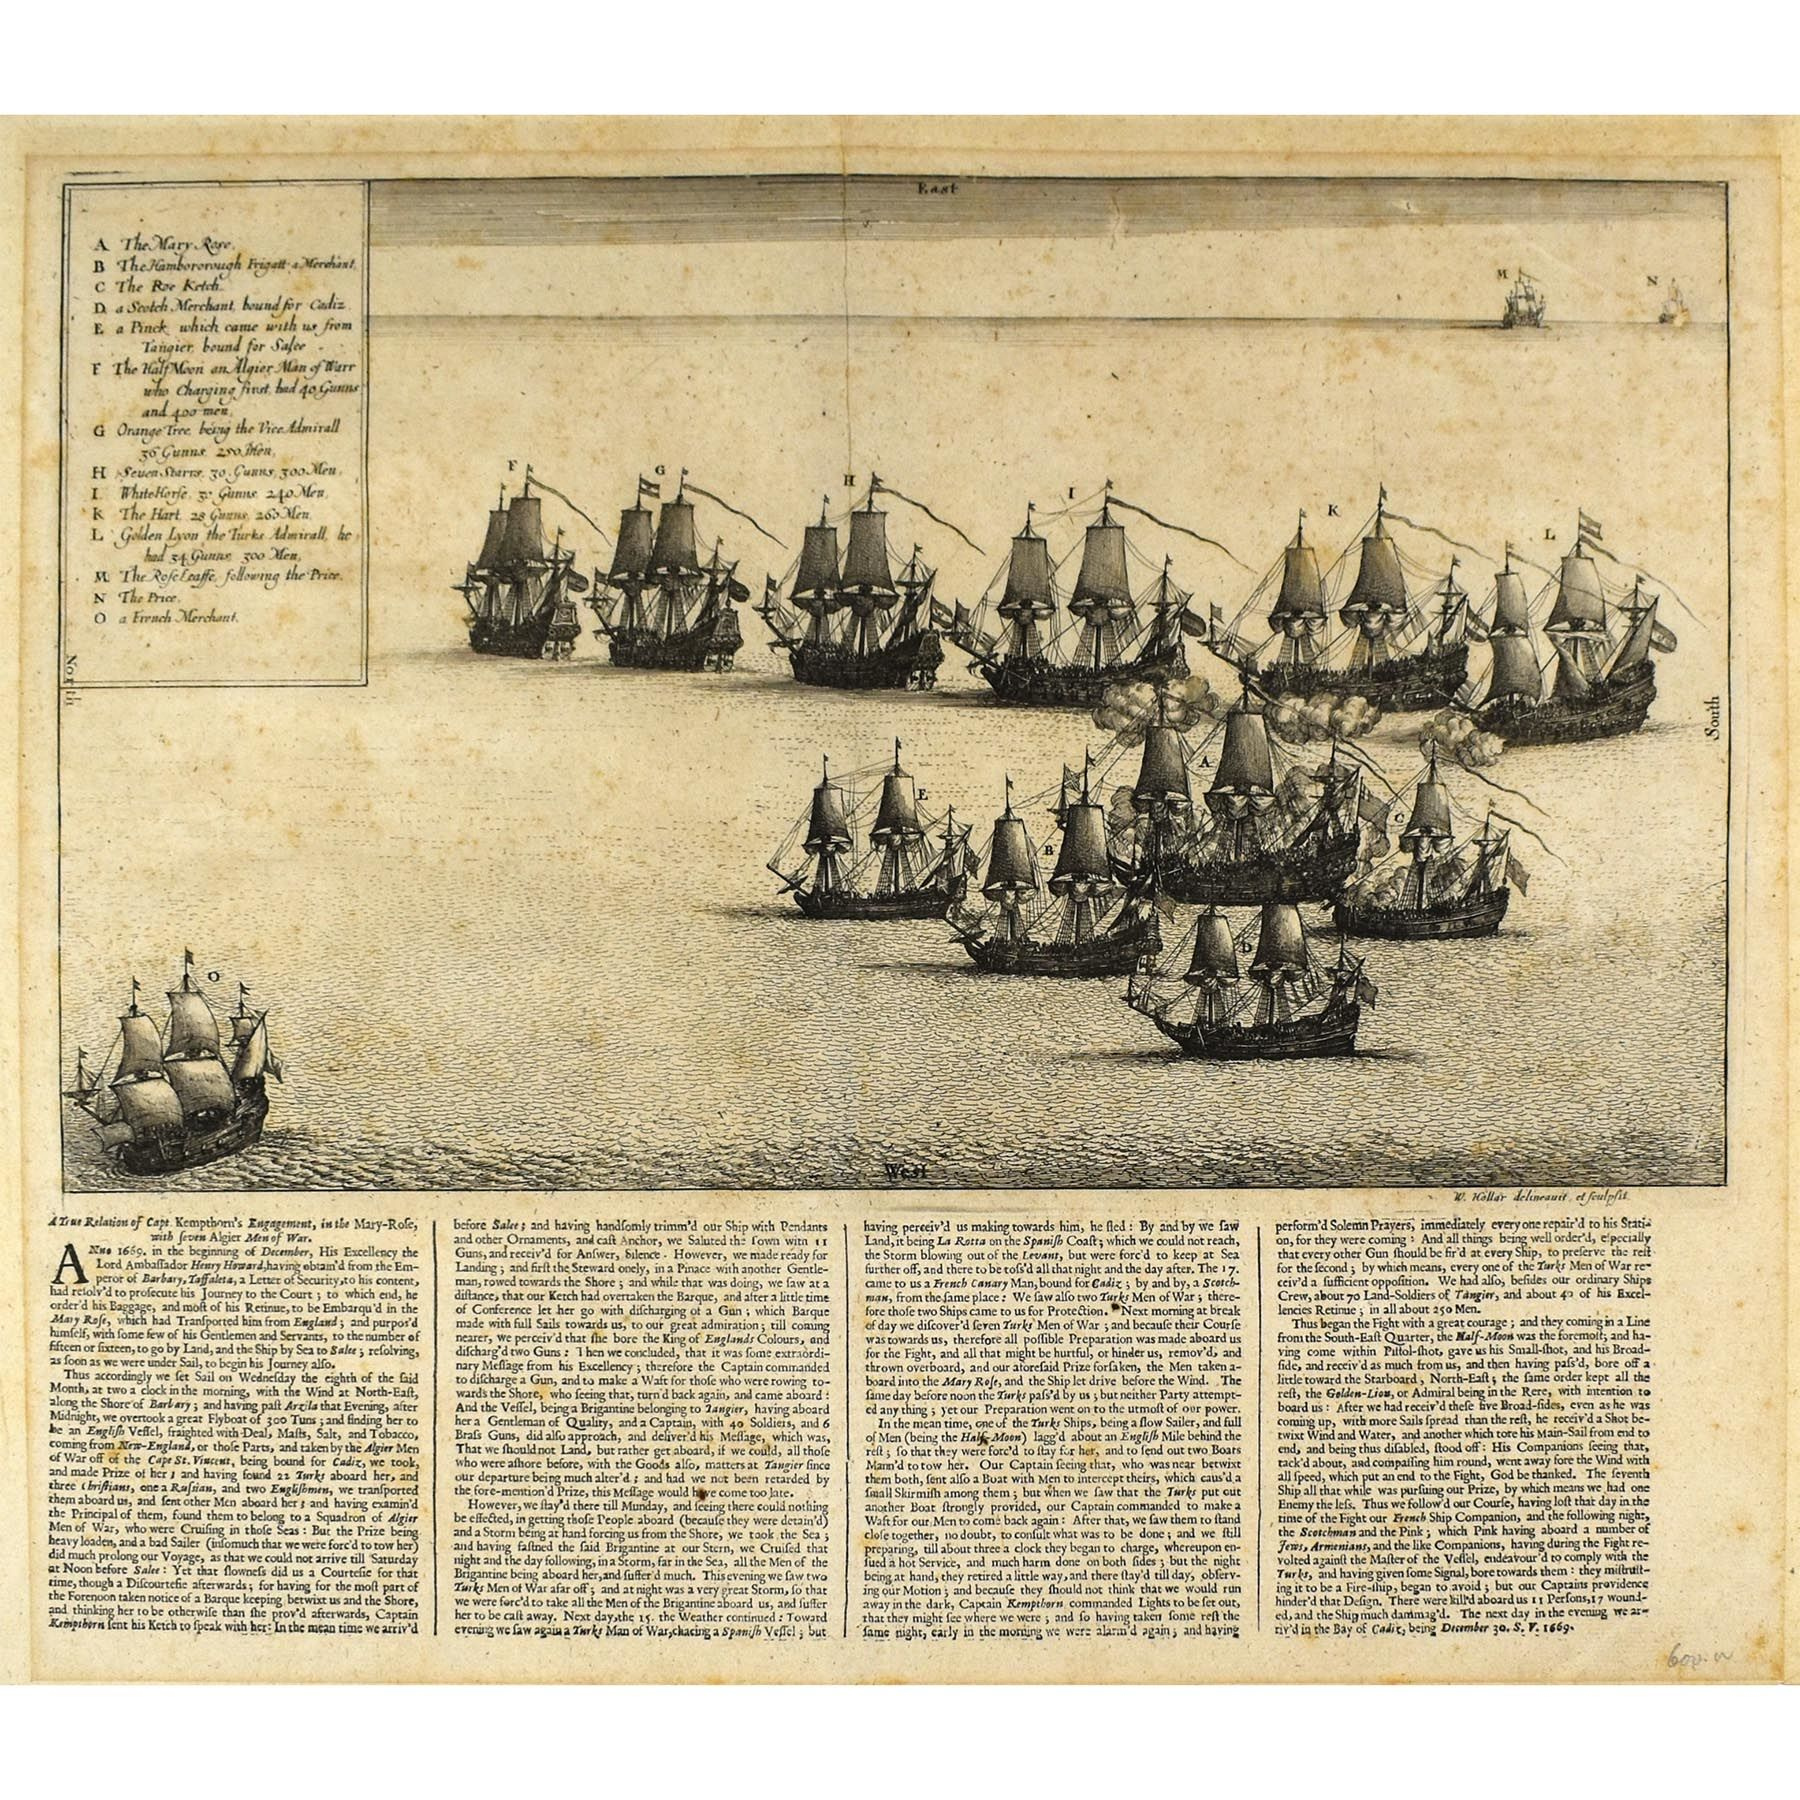 A True Relation of Capt. Kempthorn's Engagement, in the Mary-Rose, with seven Algier Men of War. (photo 1)